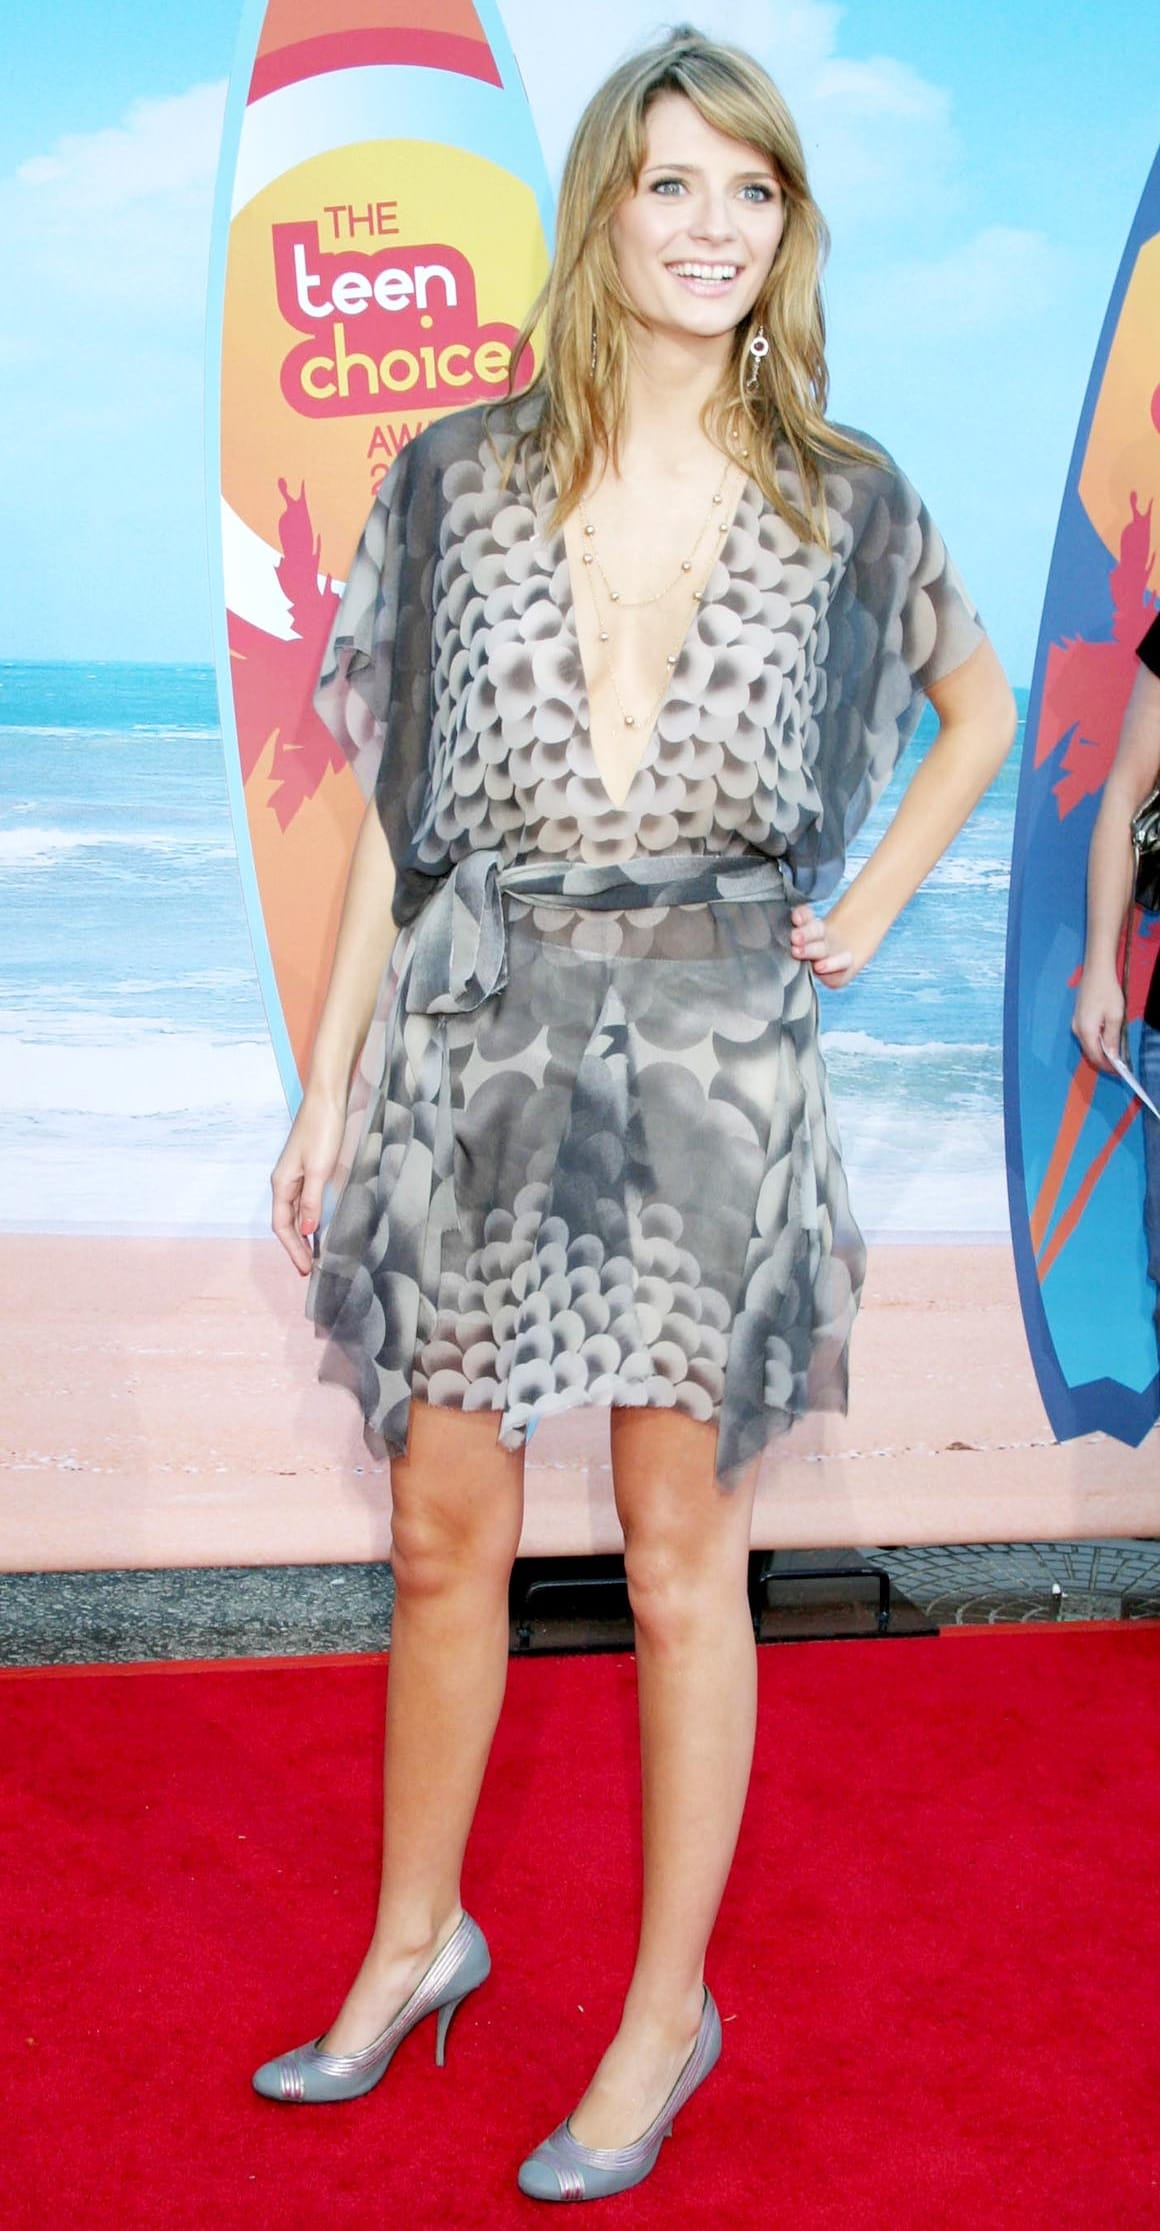 Mischa Barton received two Teen Choice Awards for her portrayal of Marissa Cooper in the Fox television series The O.C.